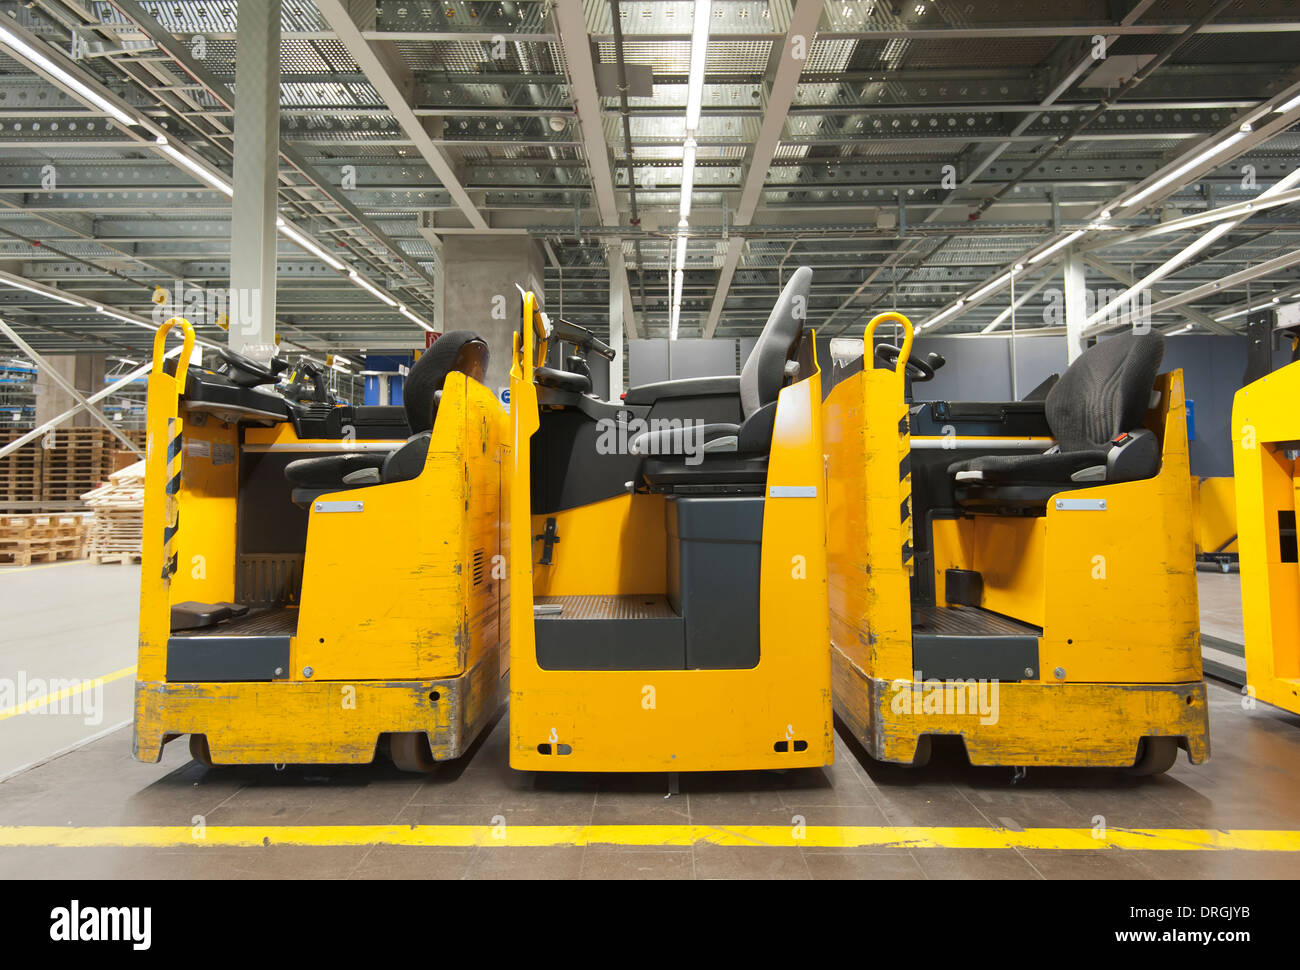 Three parked forklift in an industry warehouse - Stock Image